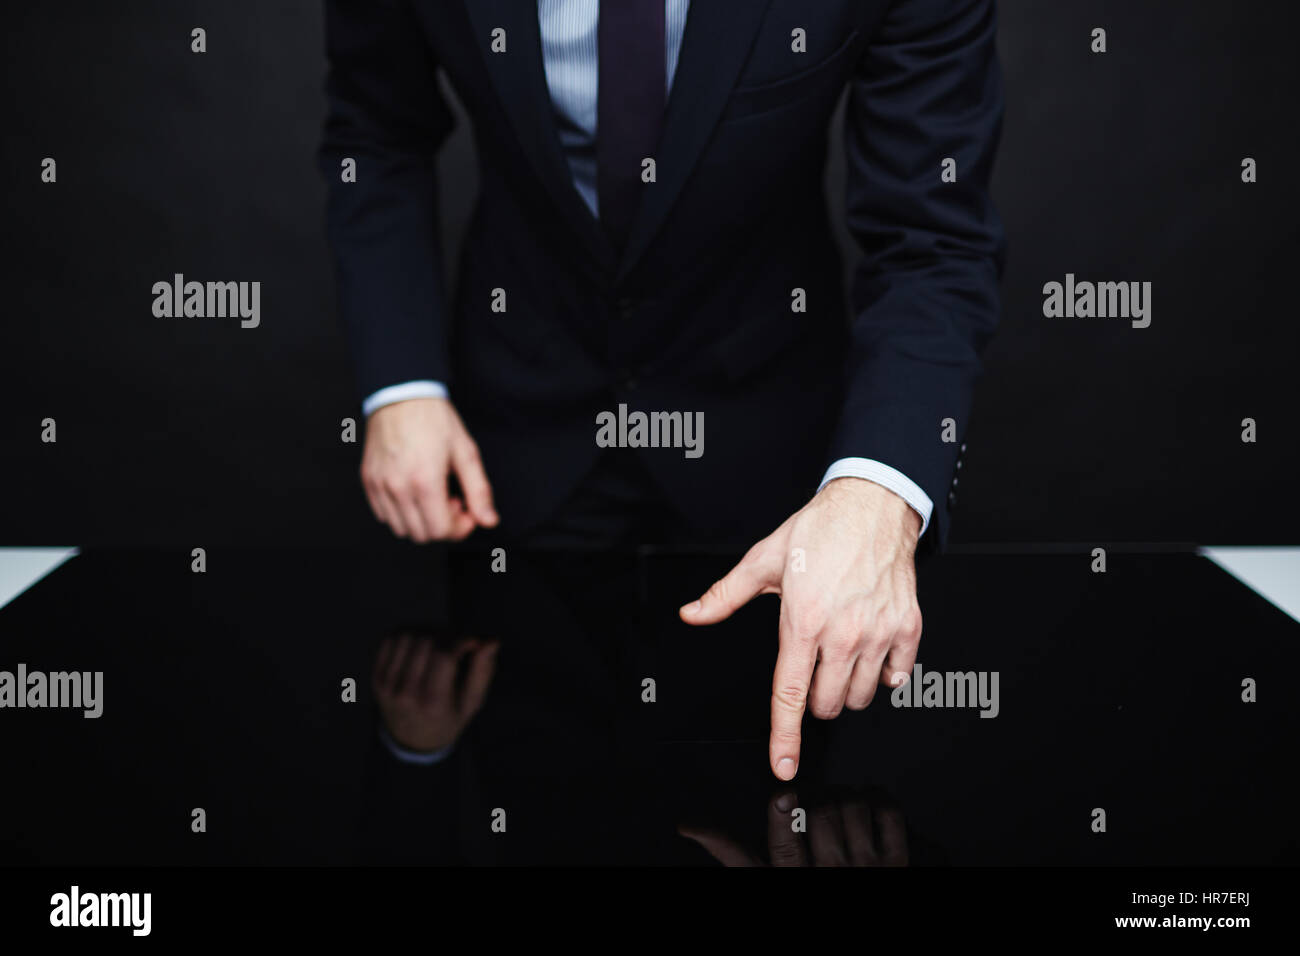 Closeup portrait of unrecognizable authority figure wearing business suit standing leaning on table  making persuasive - Stock Image